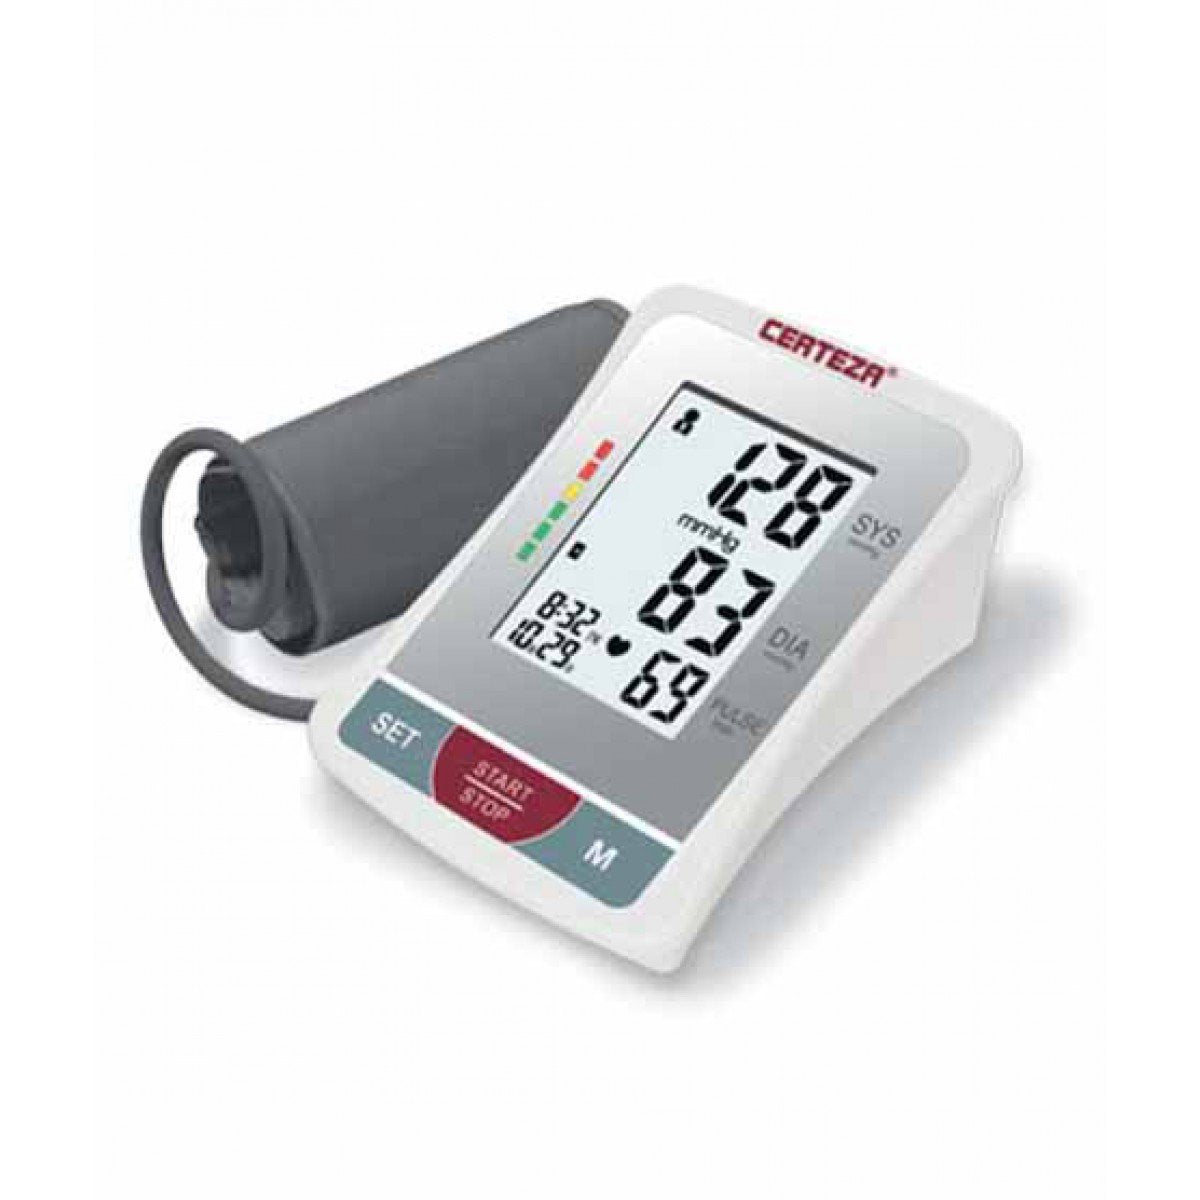 Certeza BM 407 Upper Arm Type Digital Blood Pressure Monitor